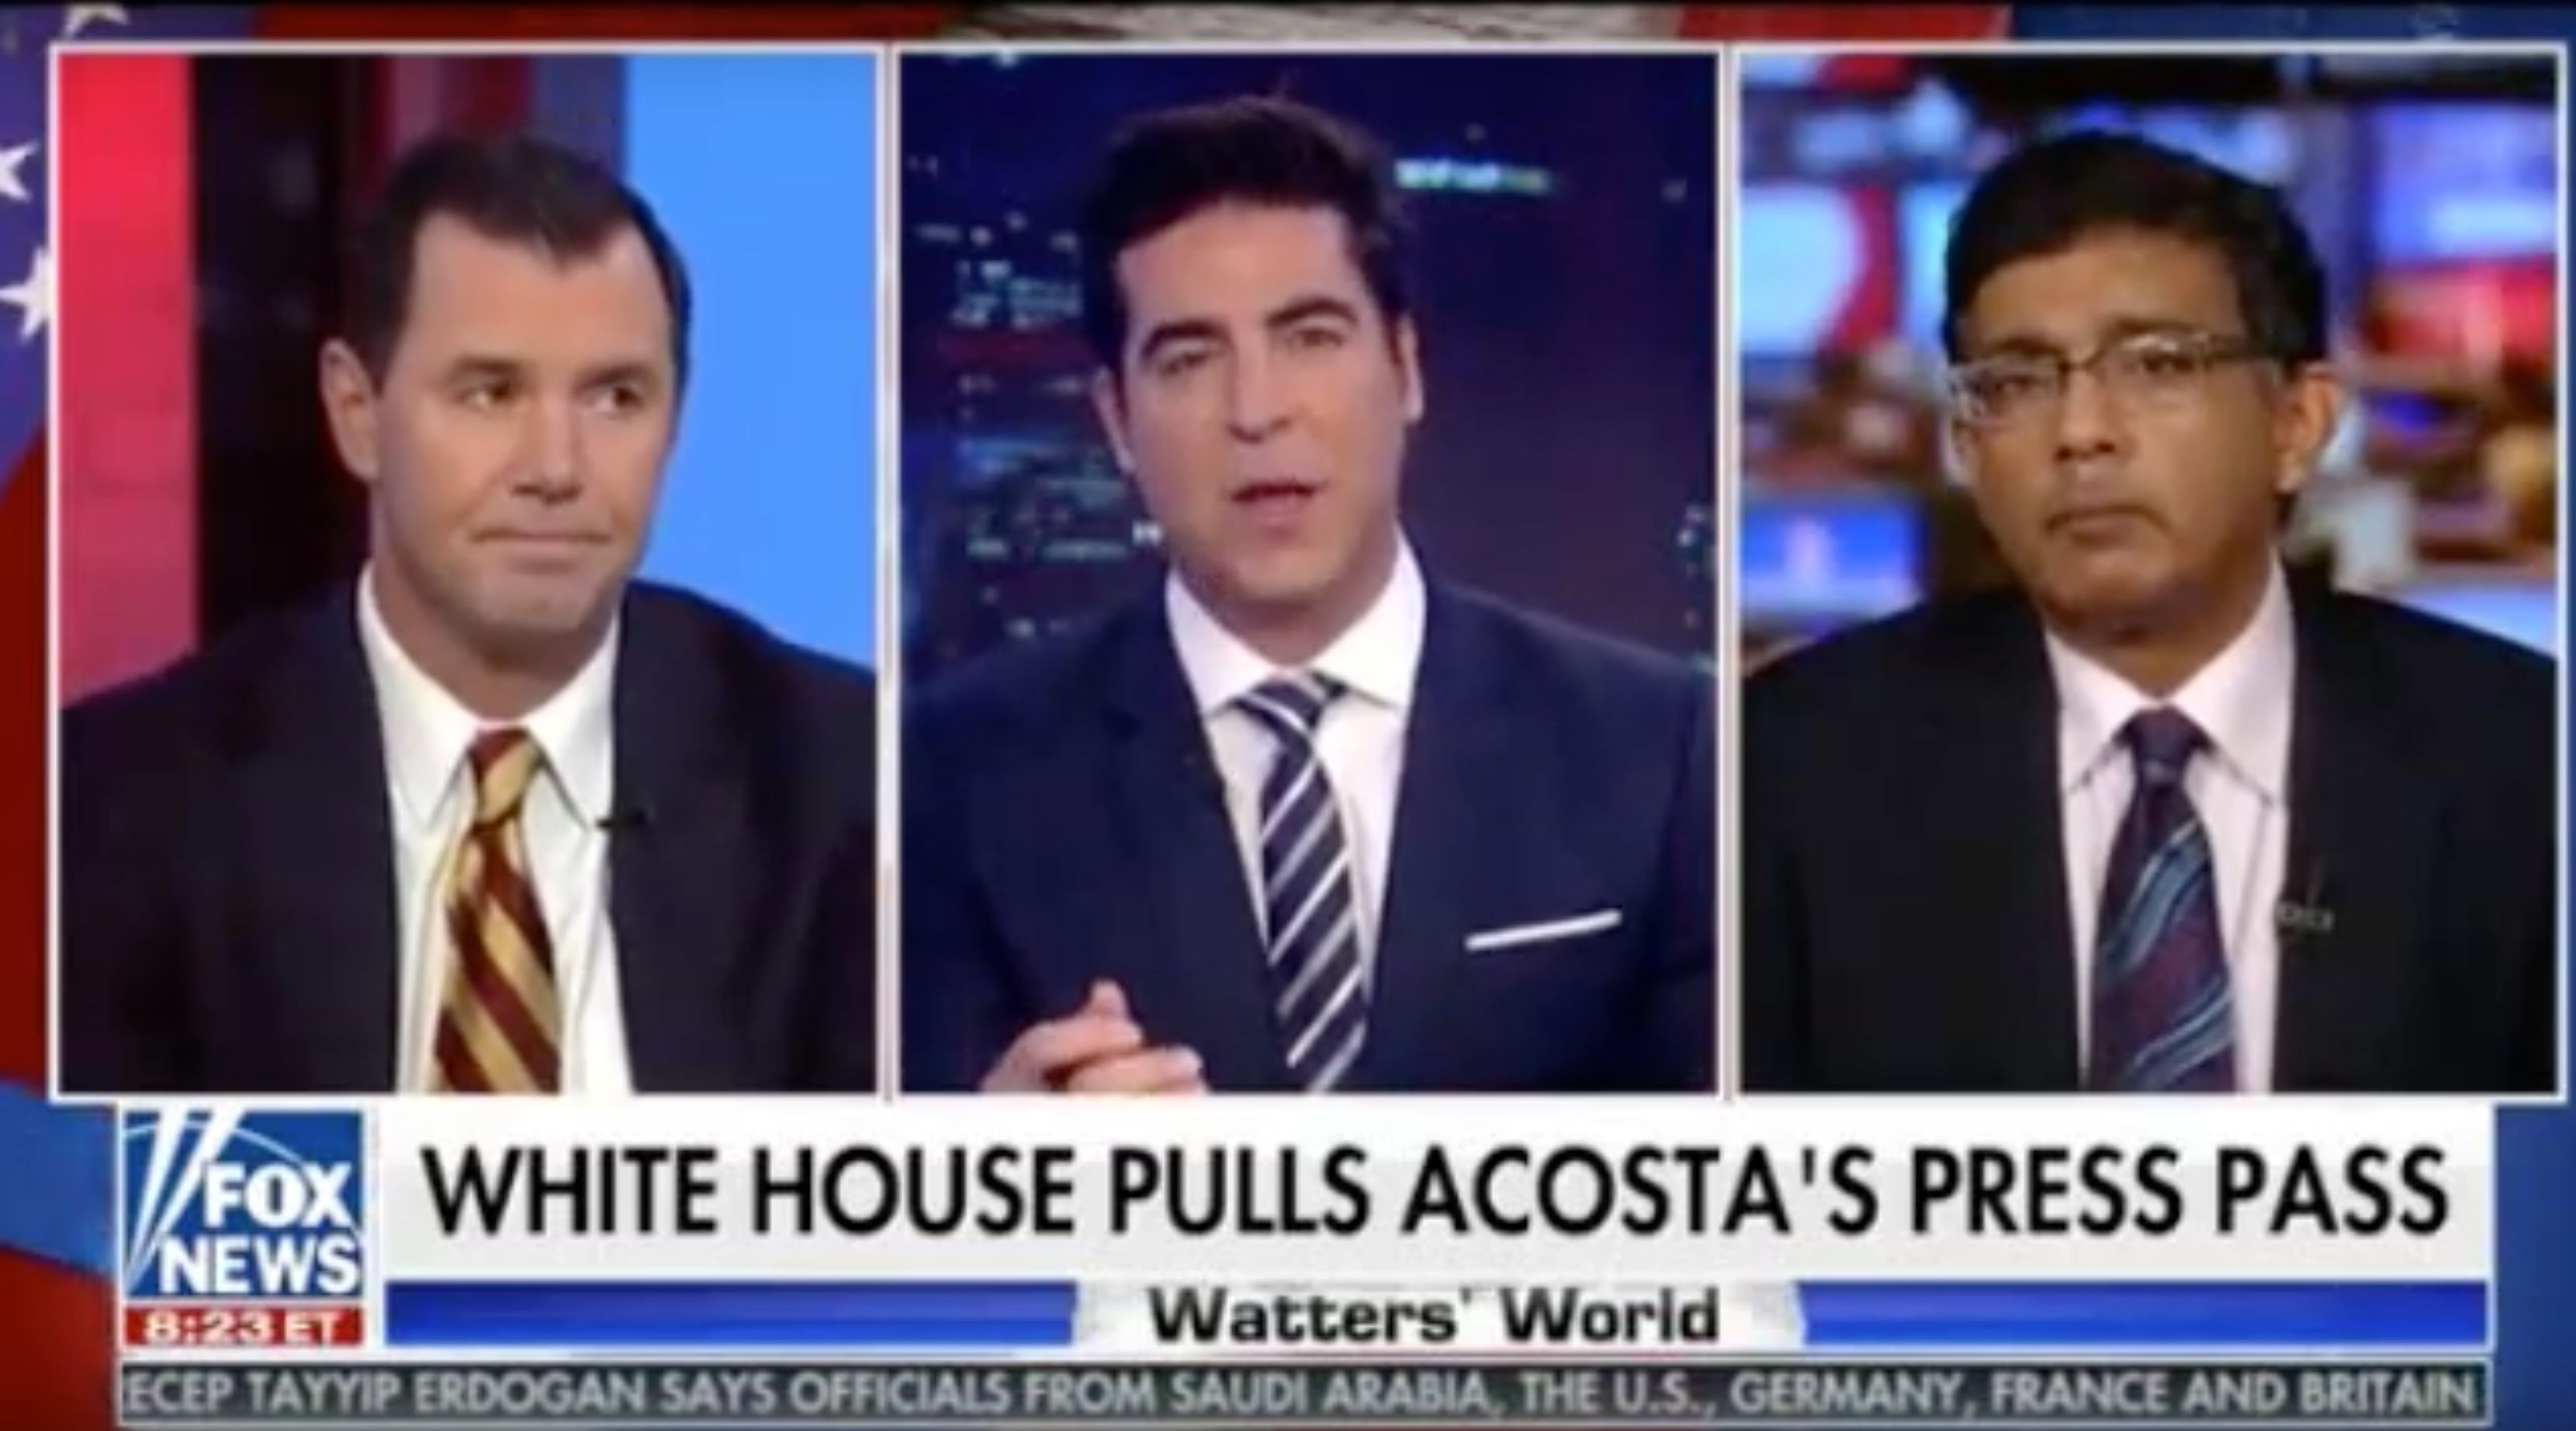 Fox News' Jesse Watters calls CNN's Jim Acosta the Rosa Parks of the press corps.